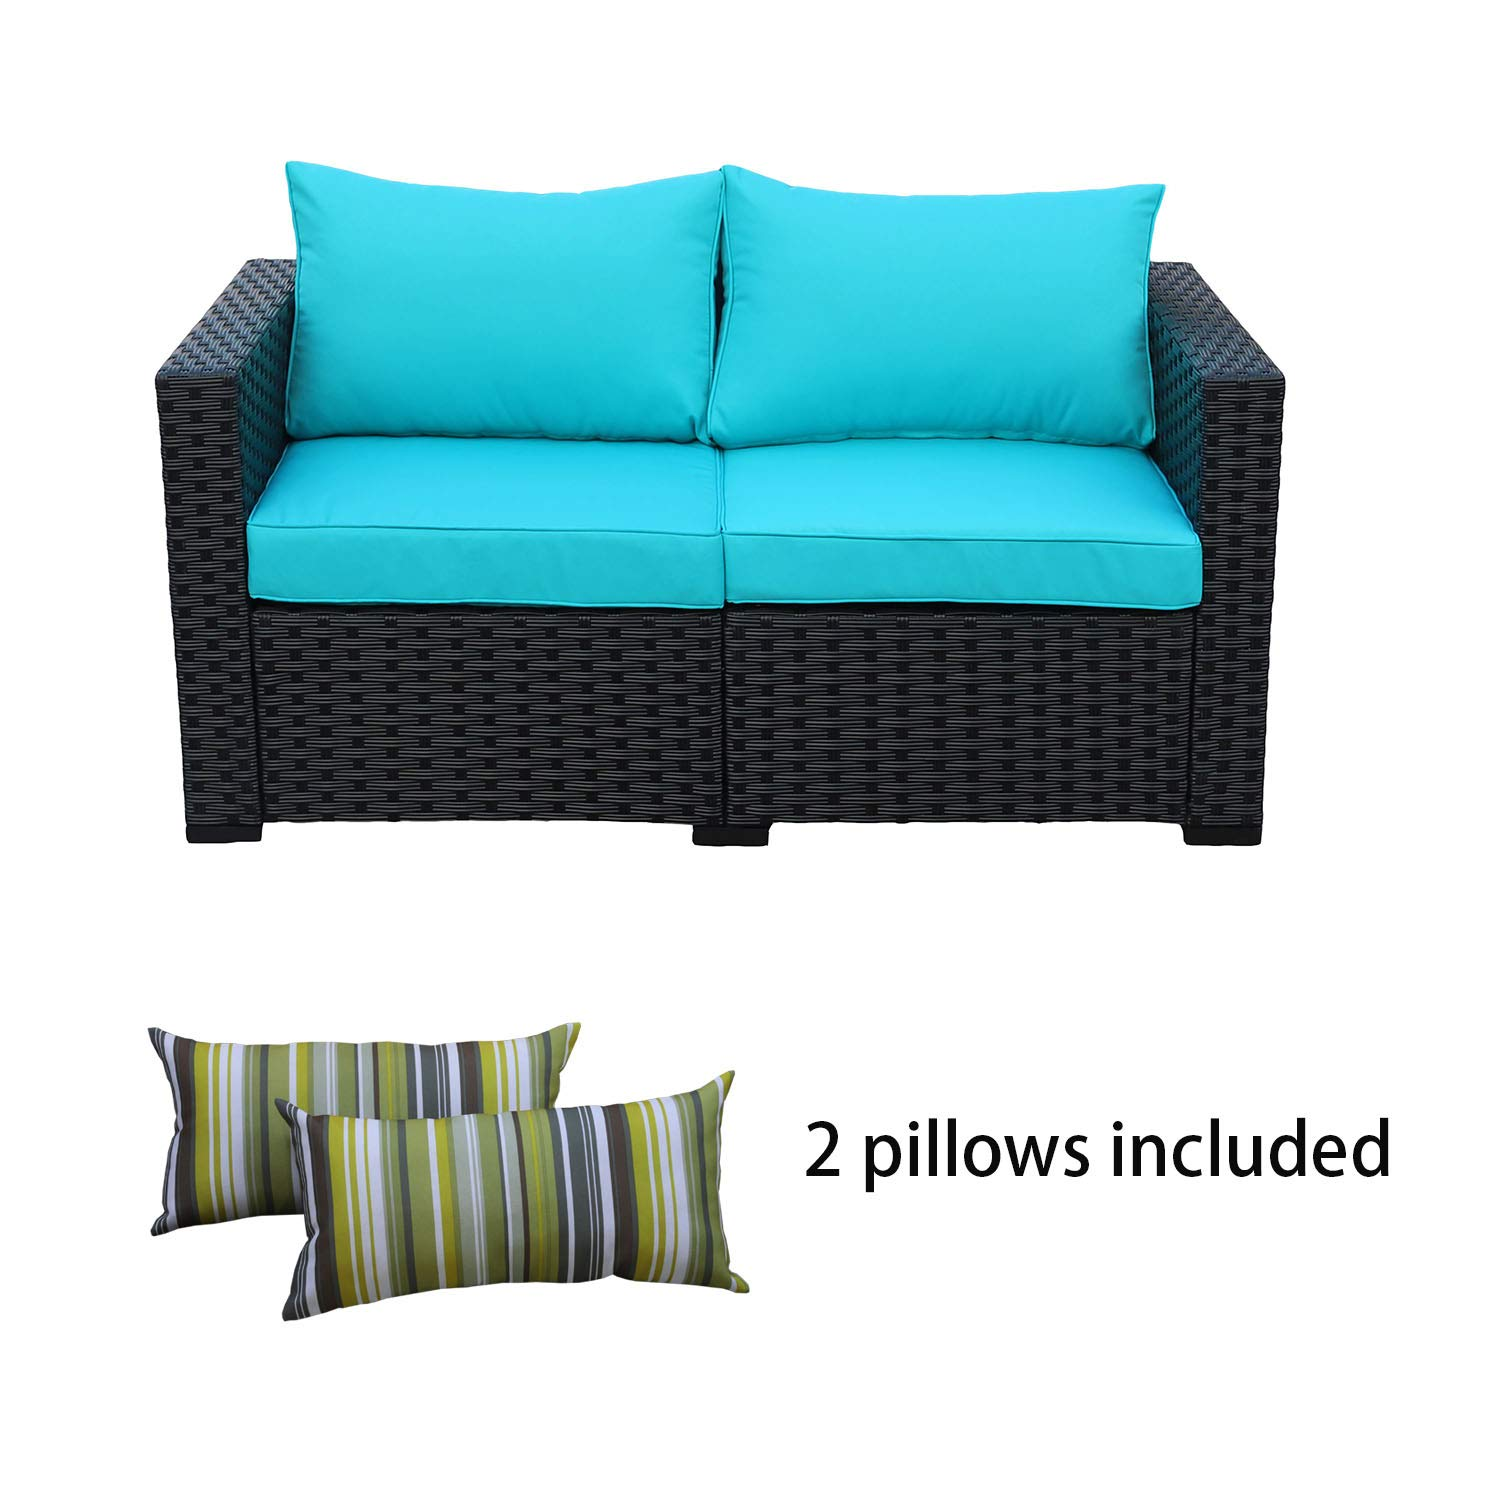 Rattaner Patio Wicker Furniture Outdoor Garden Love Seat Chair Couch Sofa Black with Turquoise Cushion